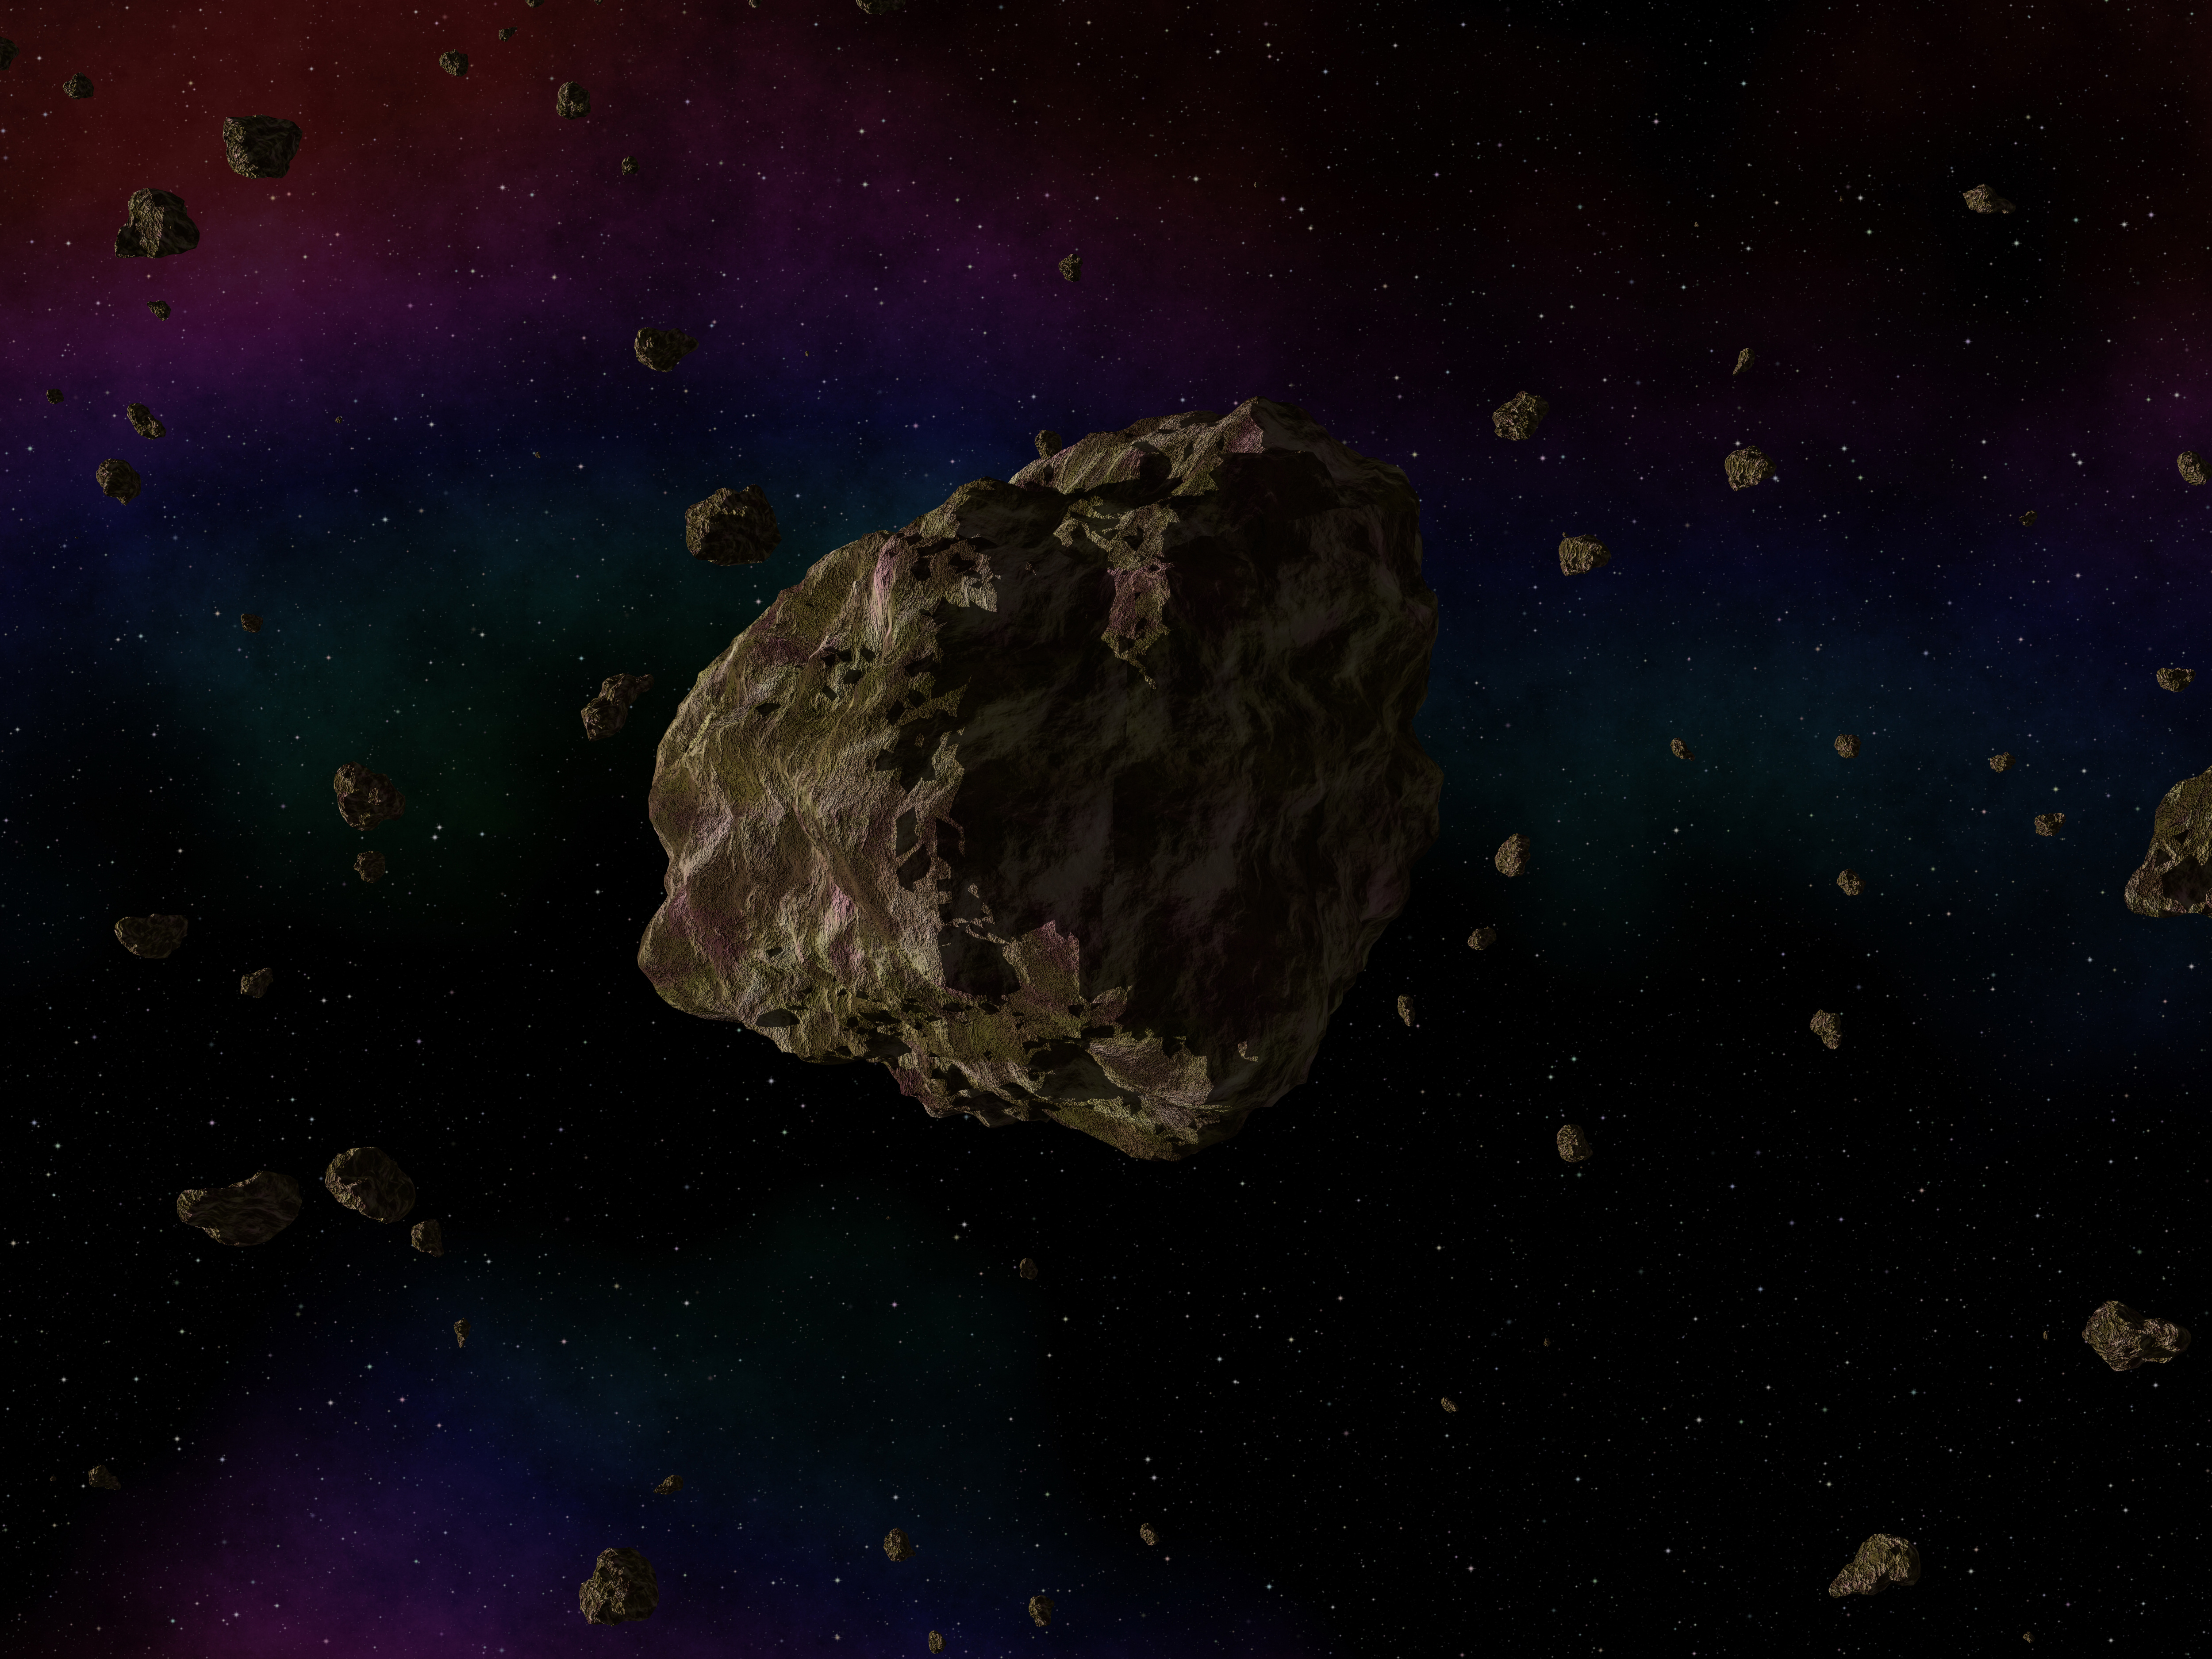 Image of asteroid courtesy of DollarPhotoClub.com